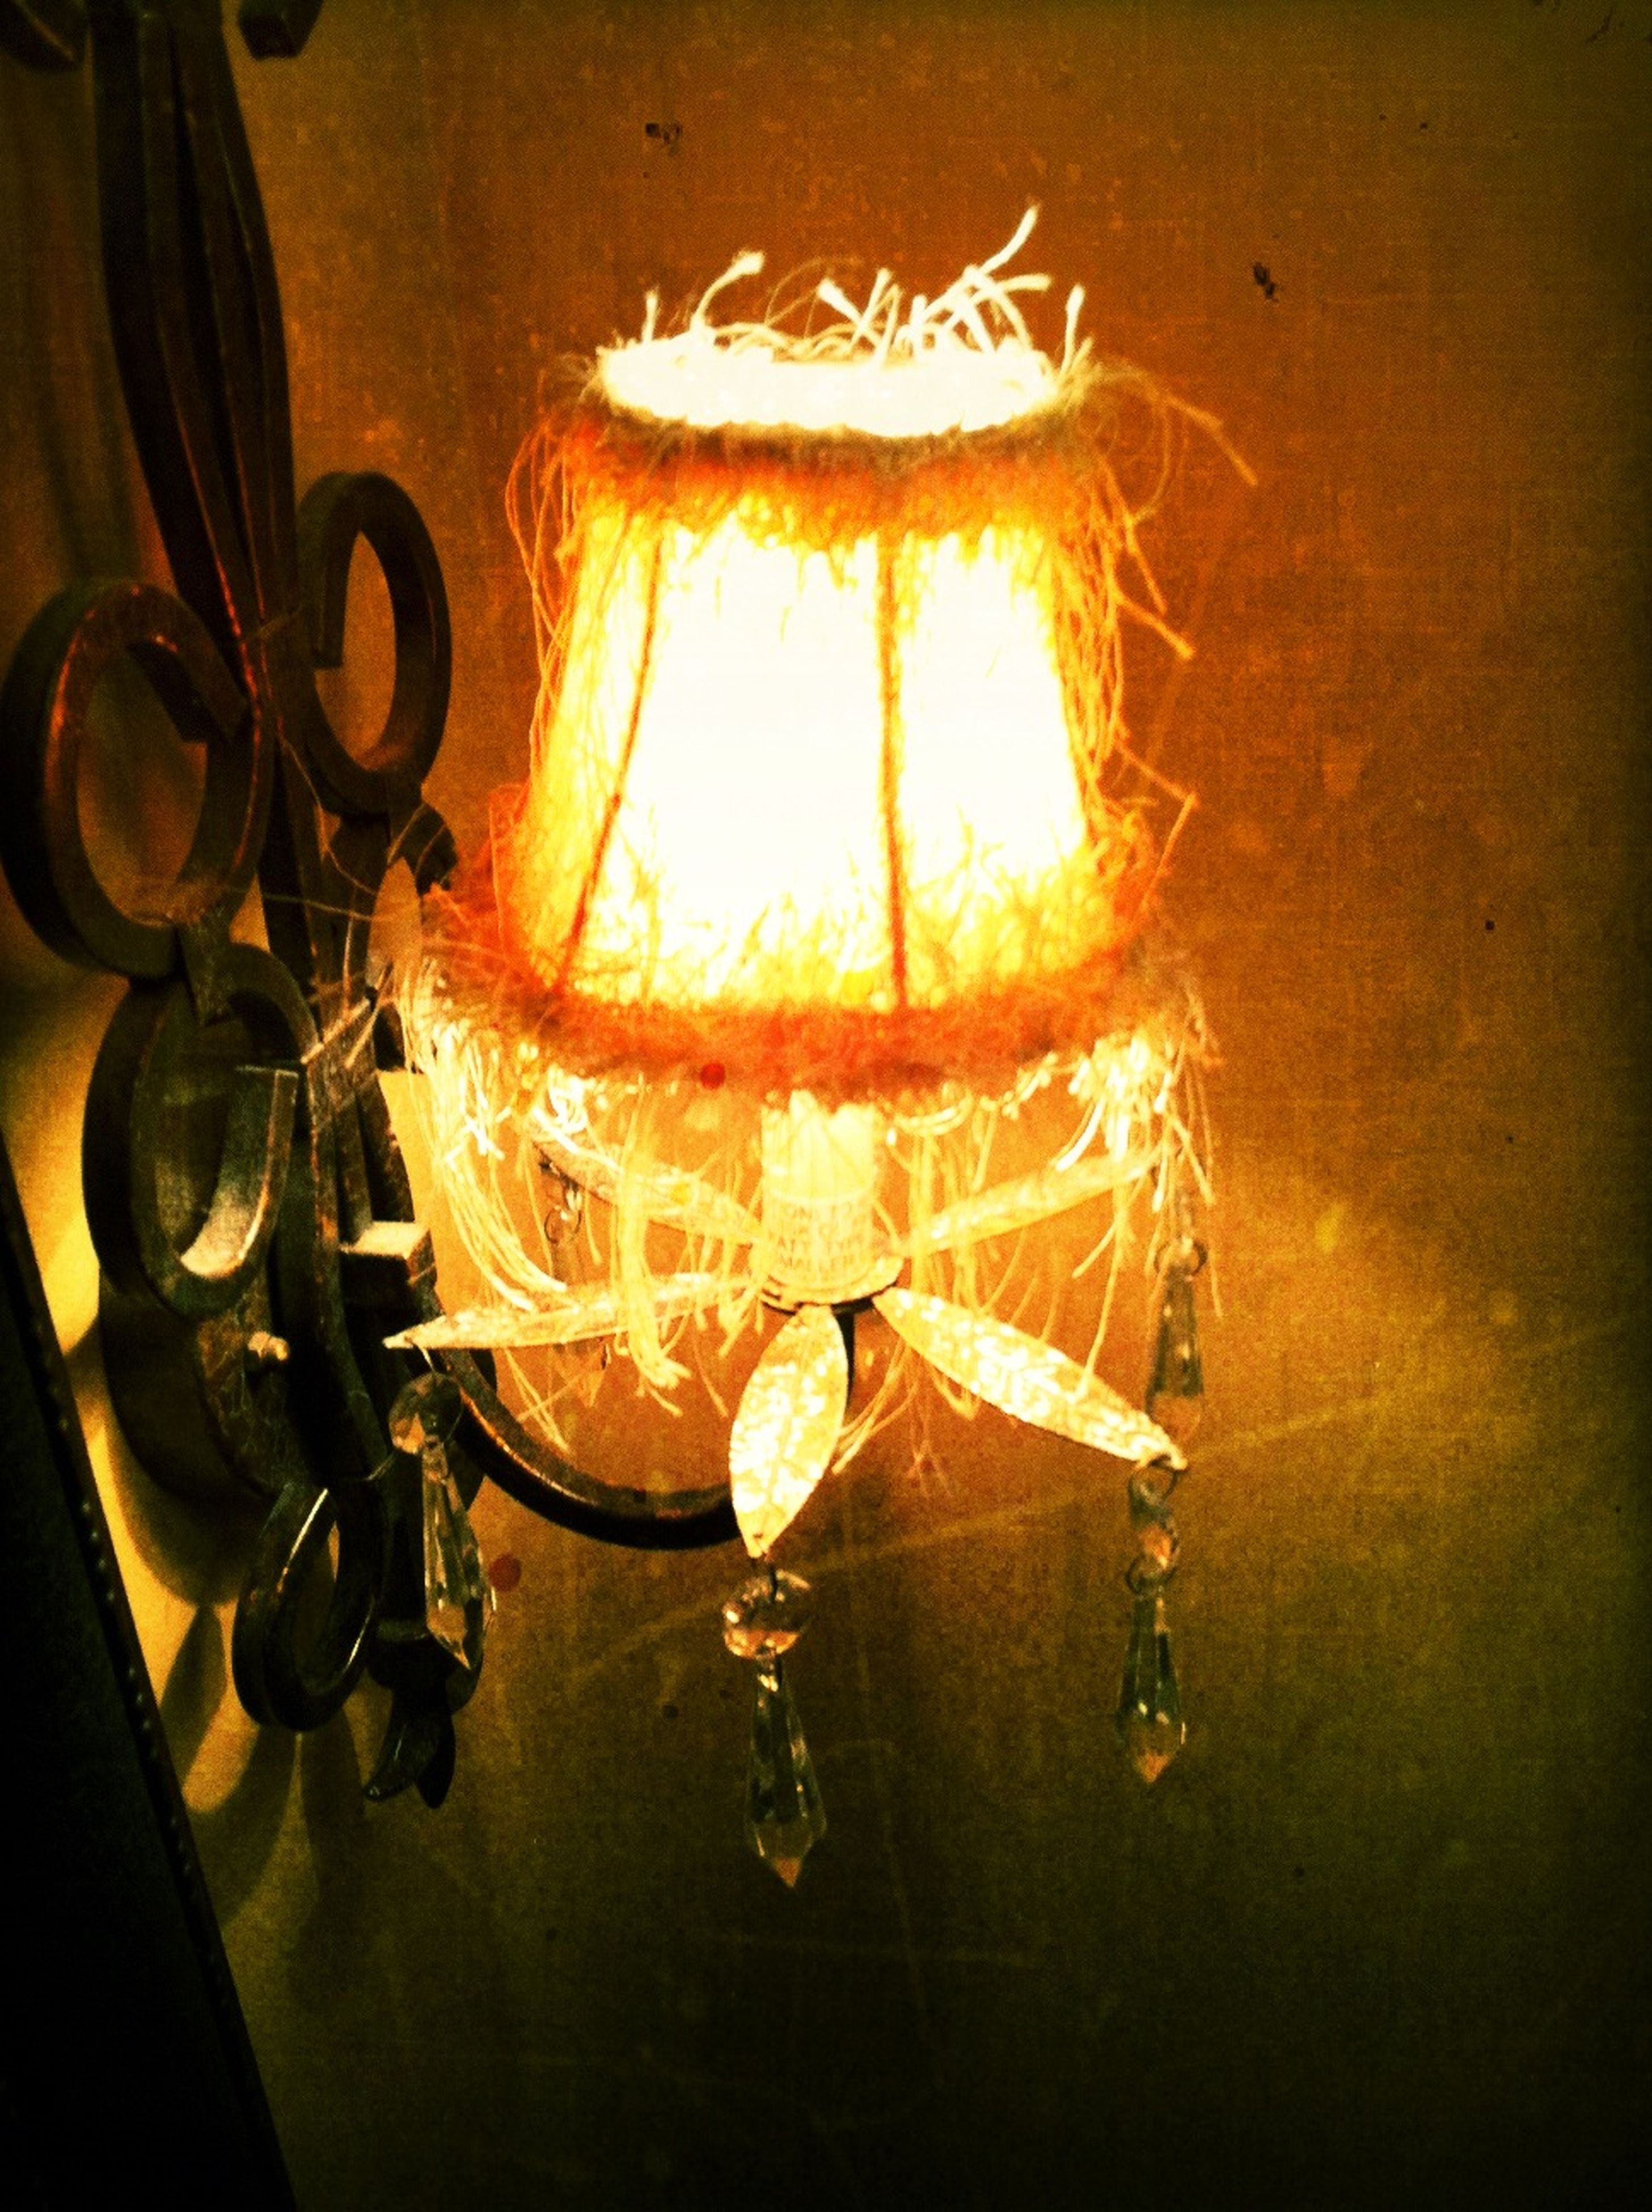 indoors, close-up, illuminated, burning, glowing, metal, heat - temperature, still life, flame, no people, old-fashioned, wall - building feature, electricity, fire - natural phenomenon, hanging, old, wood - material, lighting equipment, home interior, light - natural phenomenon